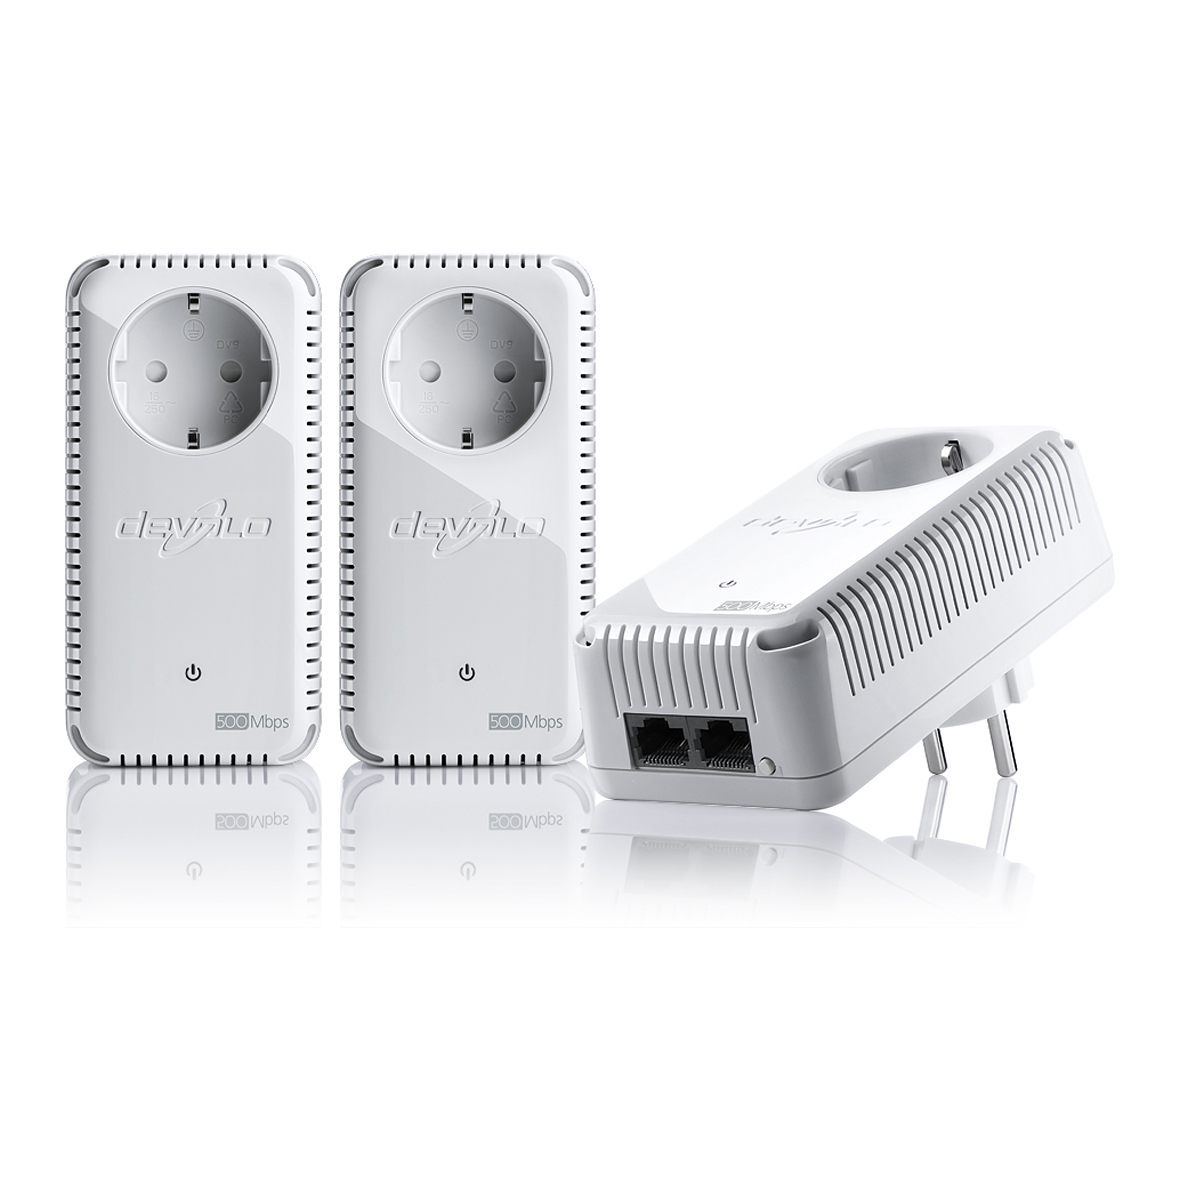 product picture dlan 500 duo plus eu nk front